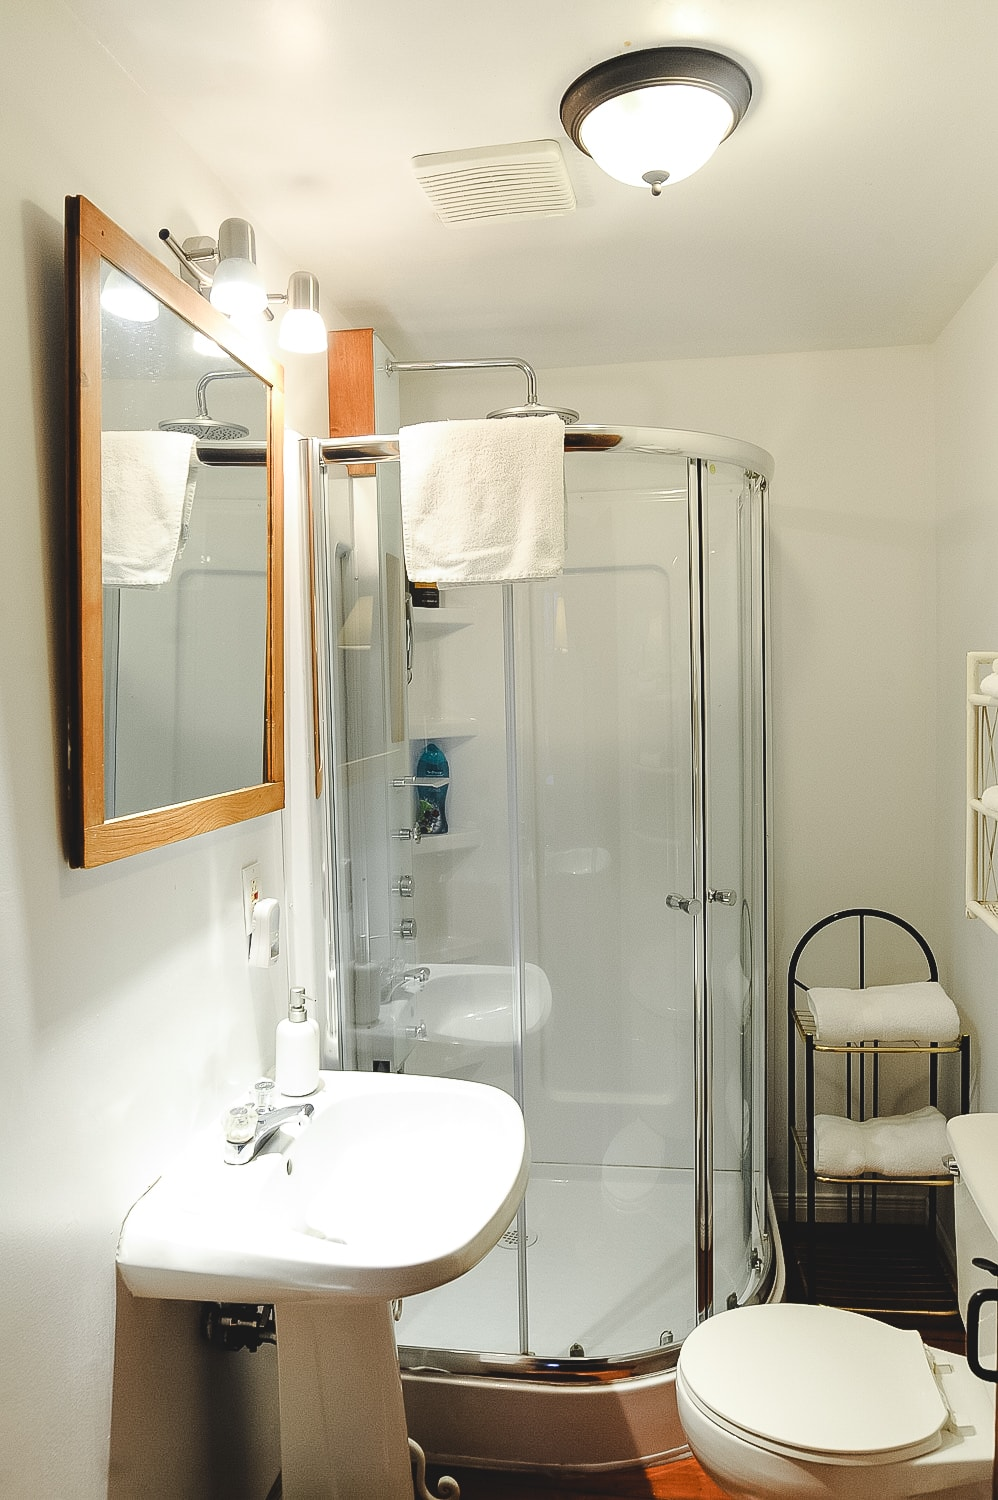 Suite Bathroom.jpg